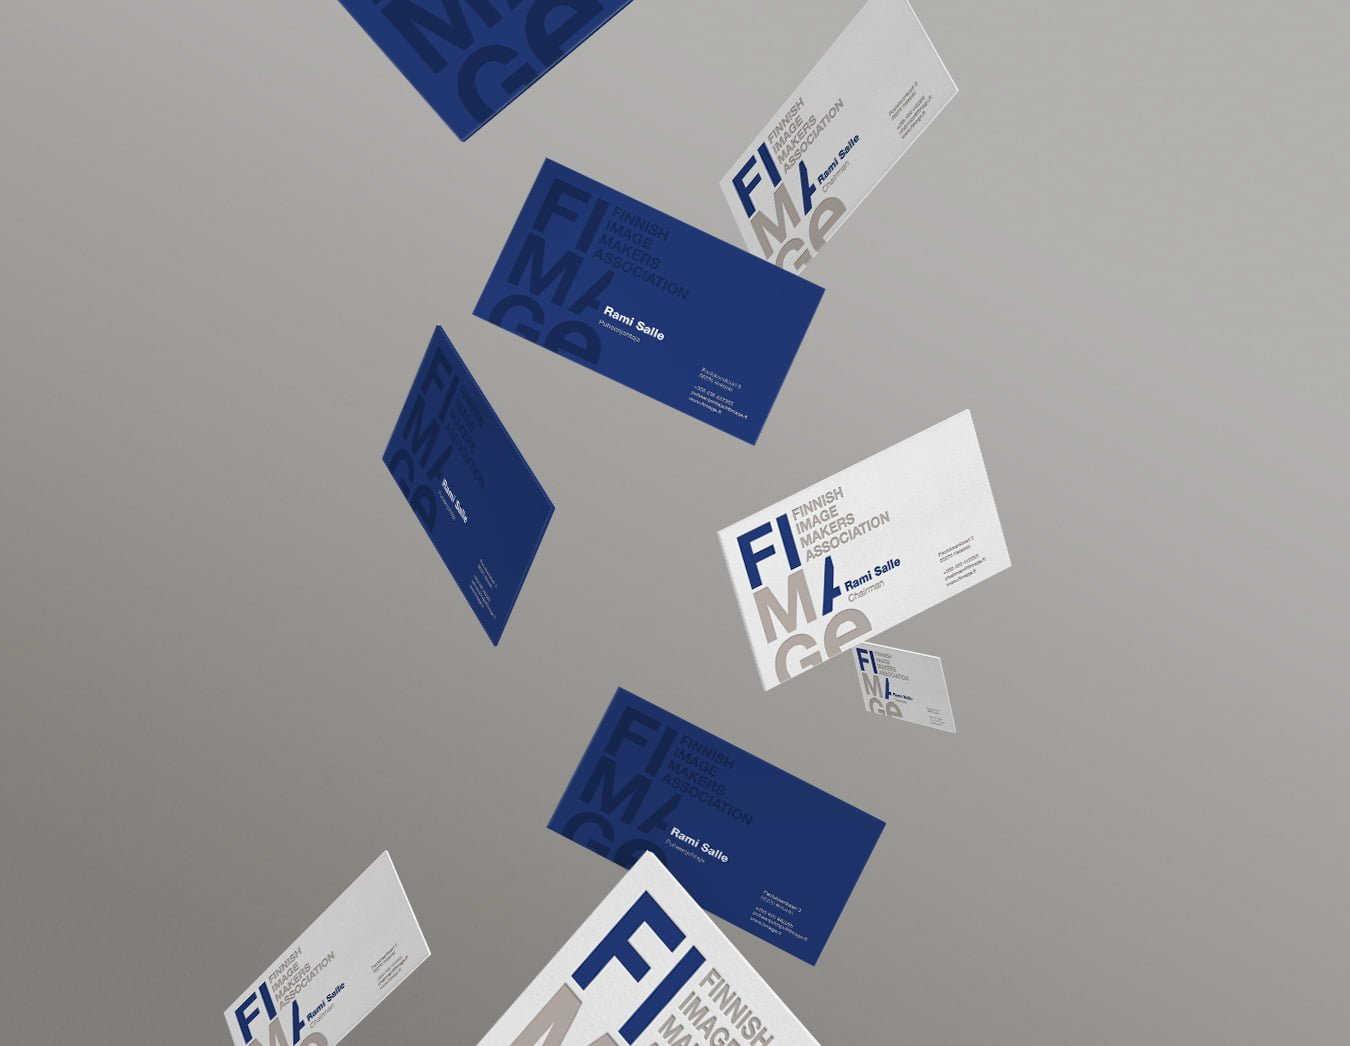 Fimage business cards